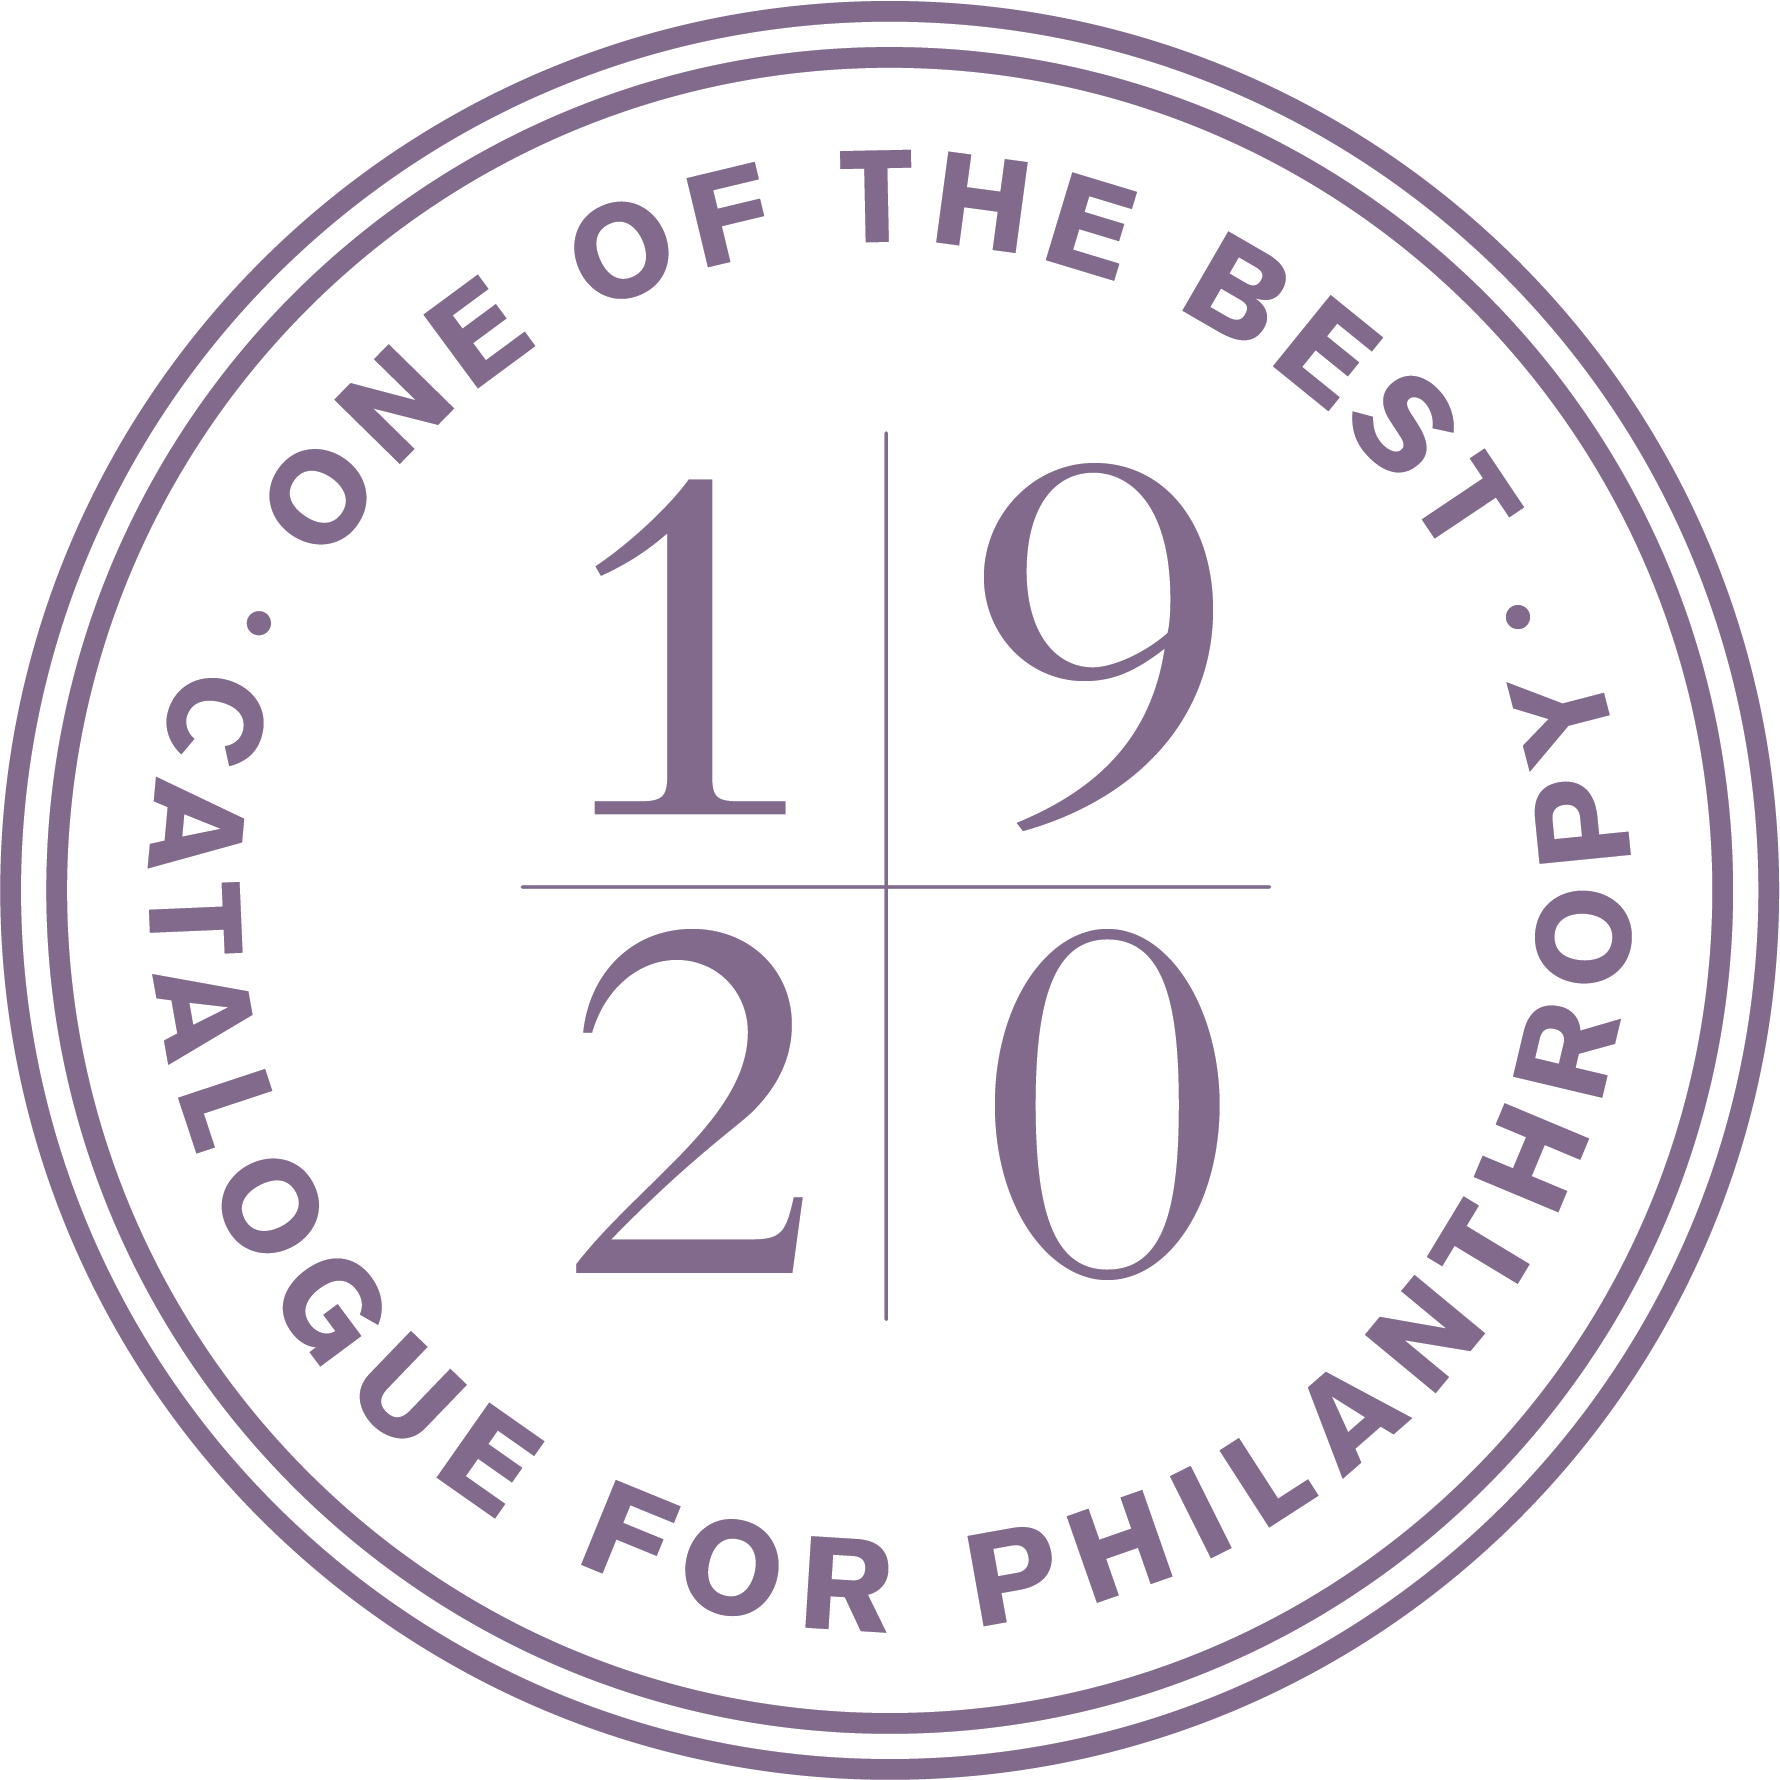 Catalogue from Philanthropy: Greater Washington